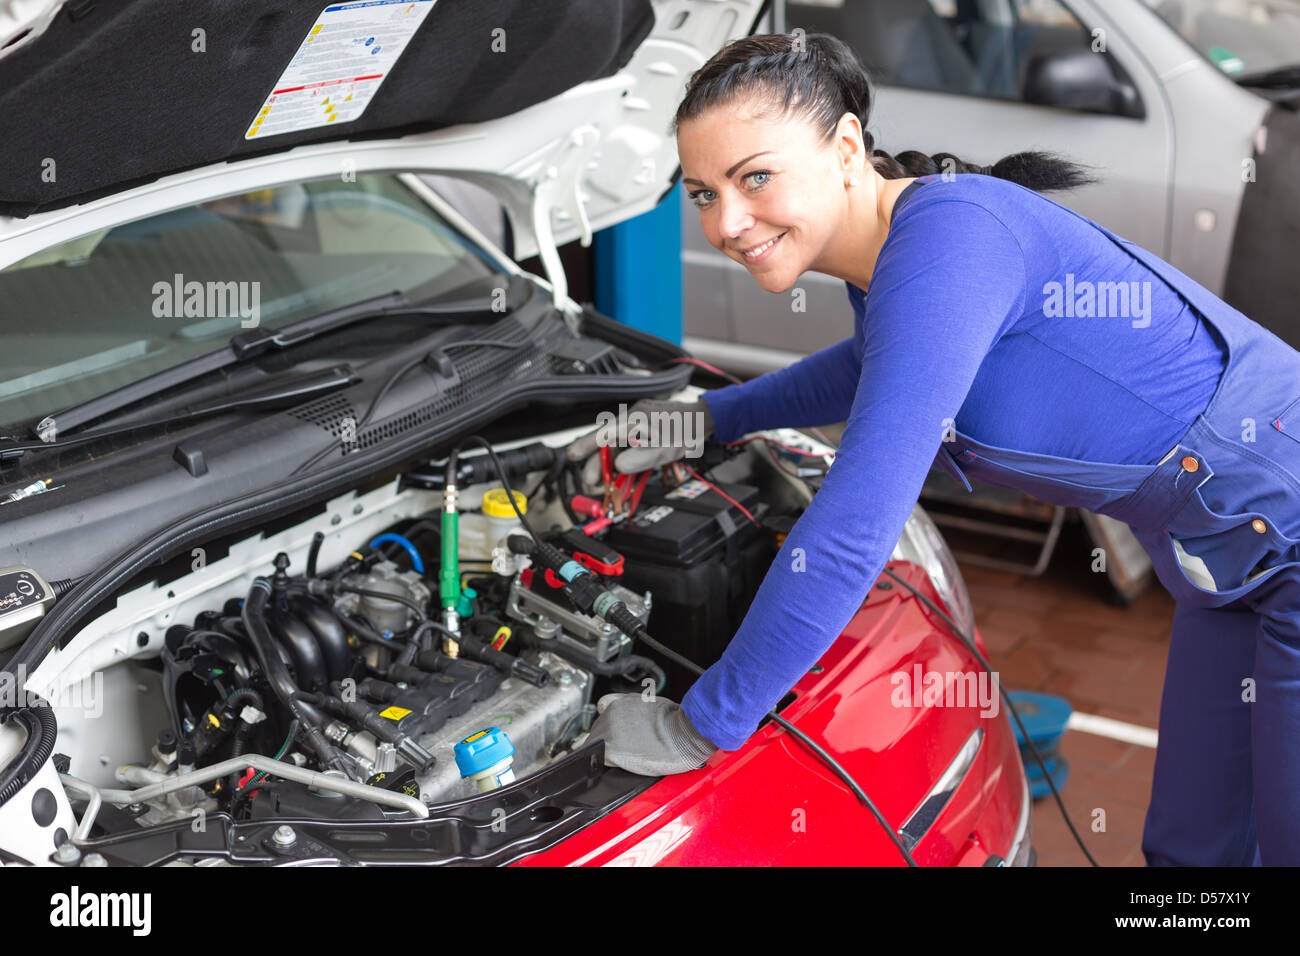 Mechanic repairing the motor or electric parts of a car in a garage - Stock Image